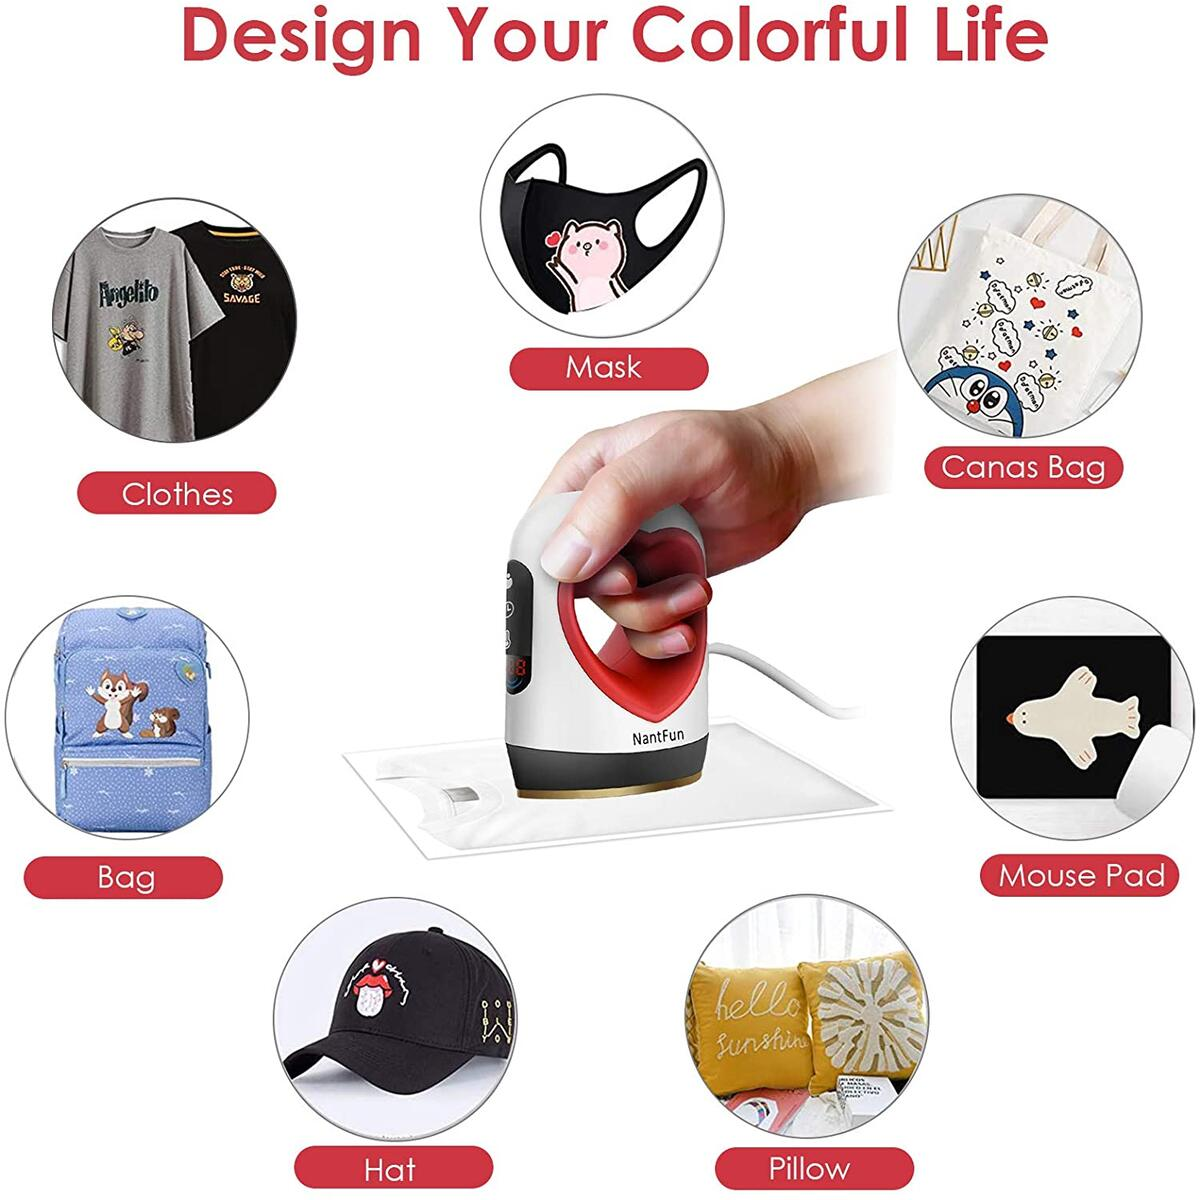 TTLIFE Mini Heat Press Machine with Digital Display Easy for T Shirts Shoes Hats and Small HTV Vinyl Projects, 2 Modes (Simple/Professional), Temperature Range 284℉~410℉, Timing Setting (Red)